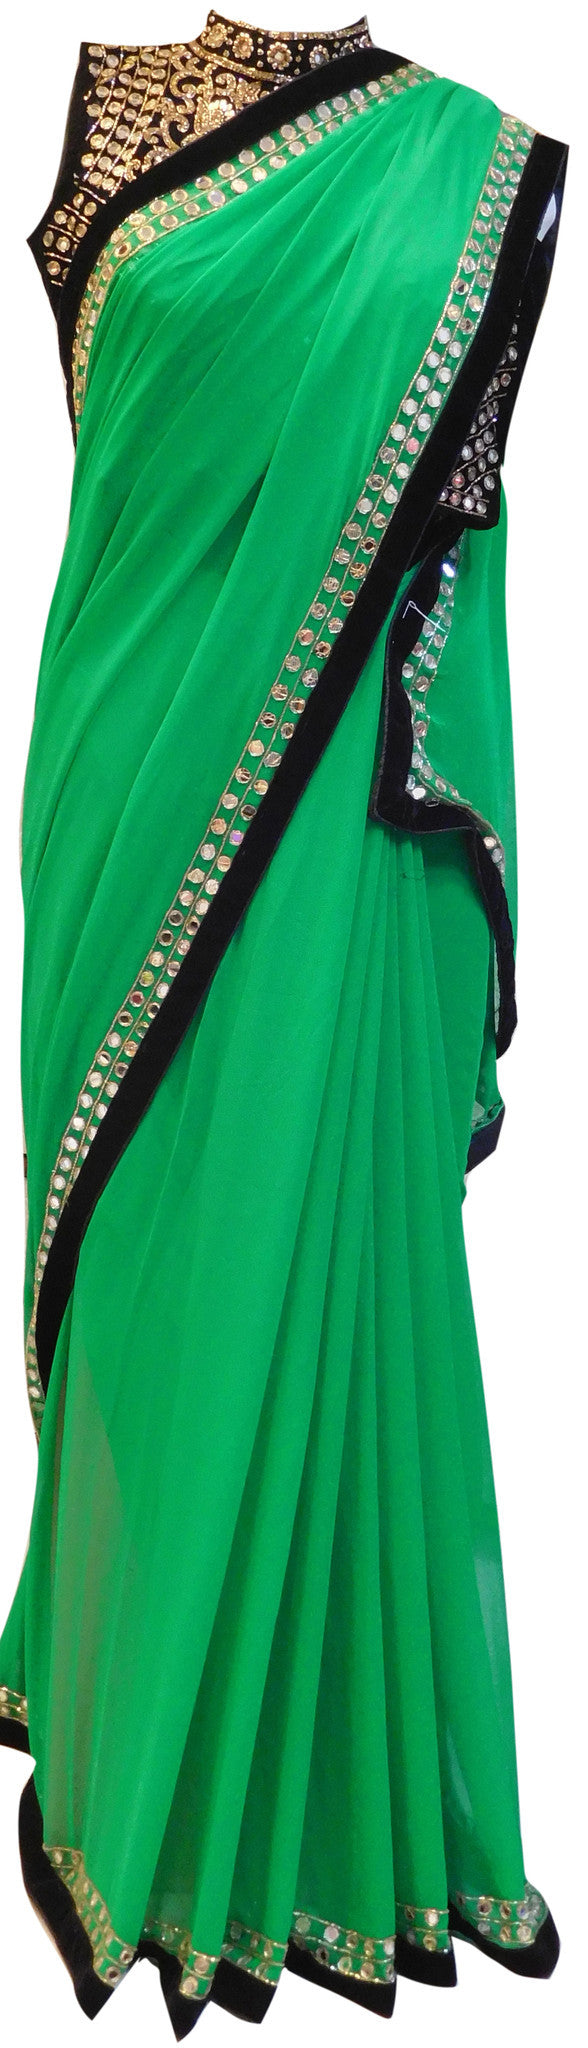 Green Designer Wedding Bridal Georgette (Viscos) Cutdana Stone Mirror Hand Embroidery Work Saree Sari WIth Heavy Blouse